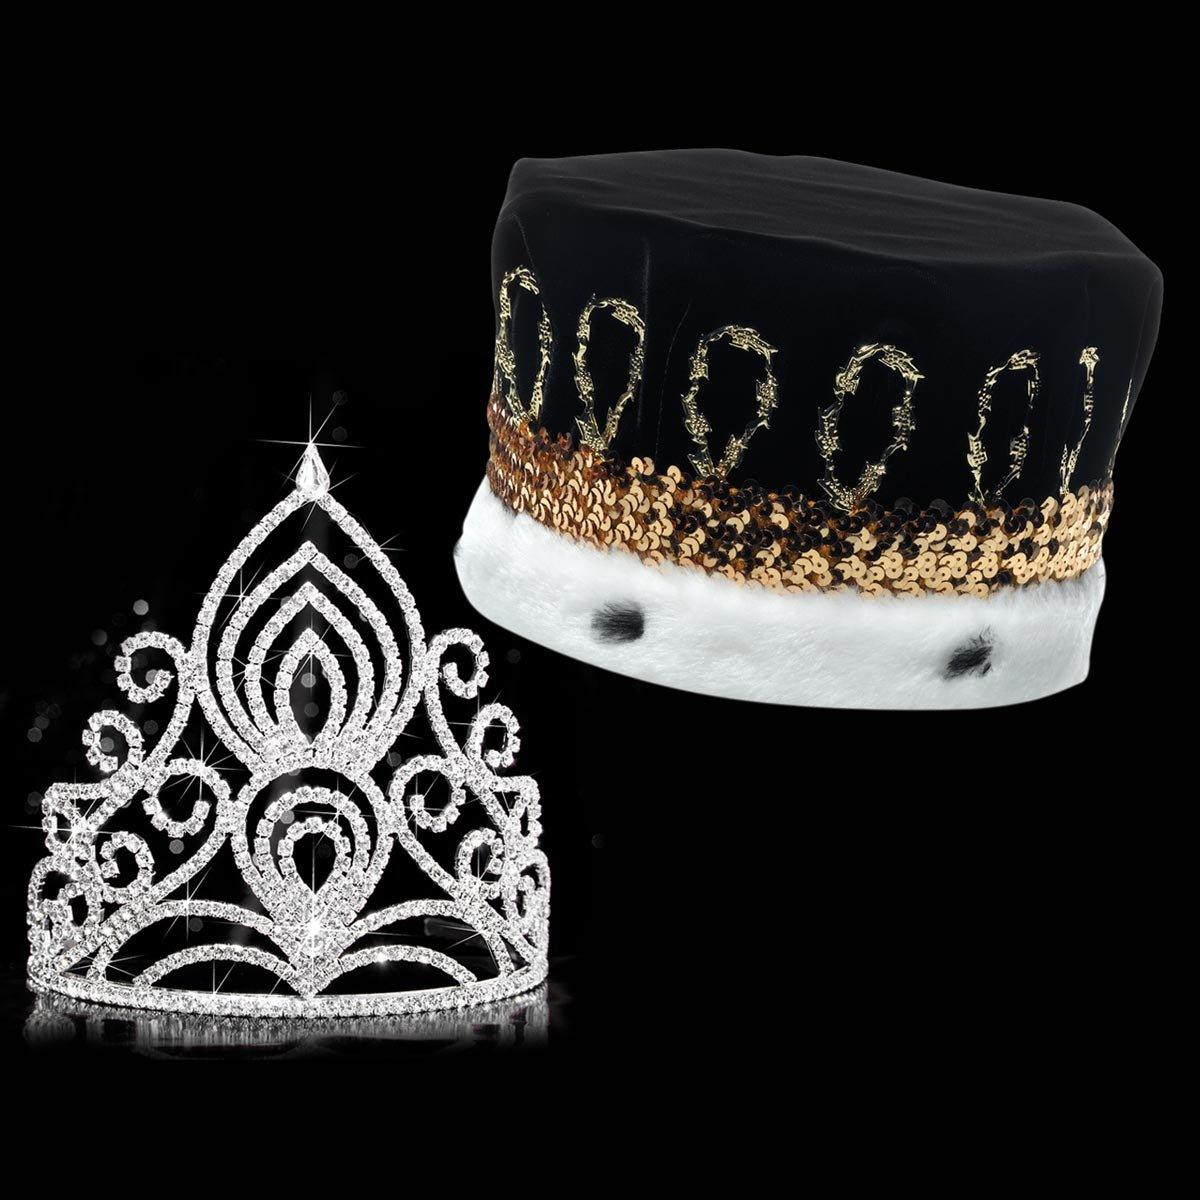 Amelia Royalty Set, 5 ½ inches High Amelia Tiara and Black Velvet Crown with Gold Sequins, White Fur